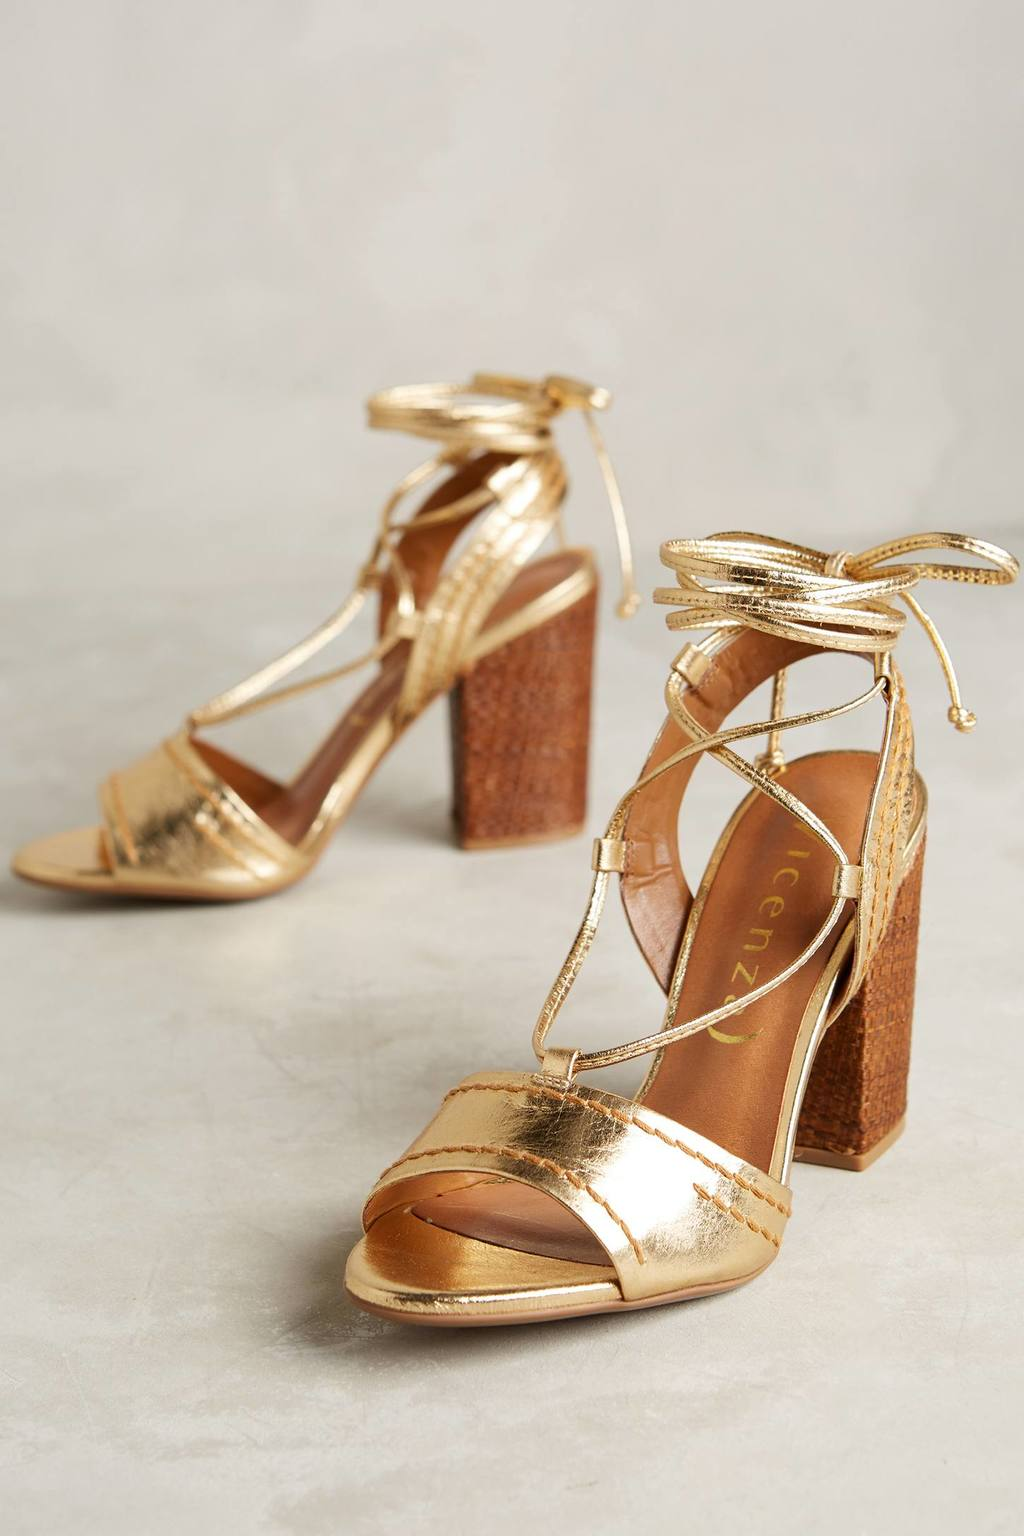 Beatriz Gold Lace Up Heels - predominant colour: gold; occasions: evening, occasion; material: leather; heel height: high; ankle detail: ankle tie; heel: block; toe: open toe/peeptoe; style: strappy; finish: metallic; pattern: plain; season: s/s 2016; wardrobe: event